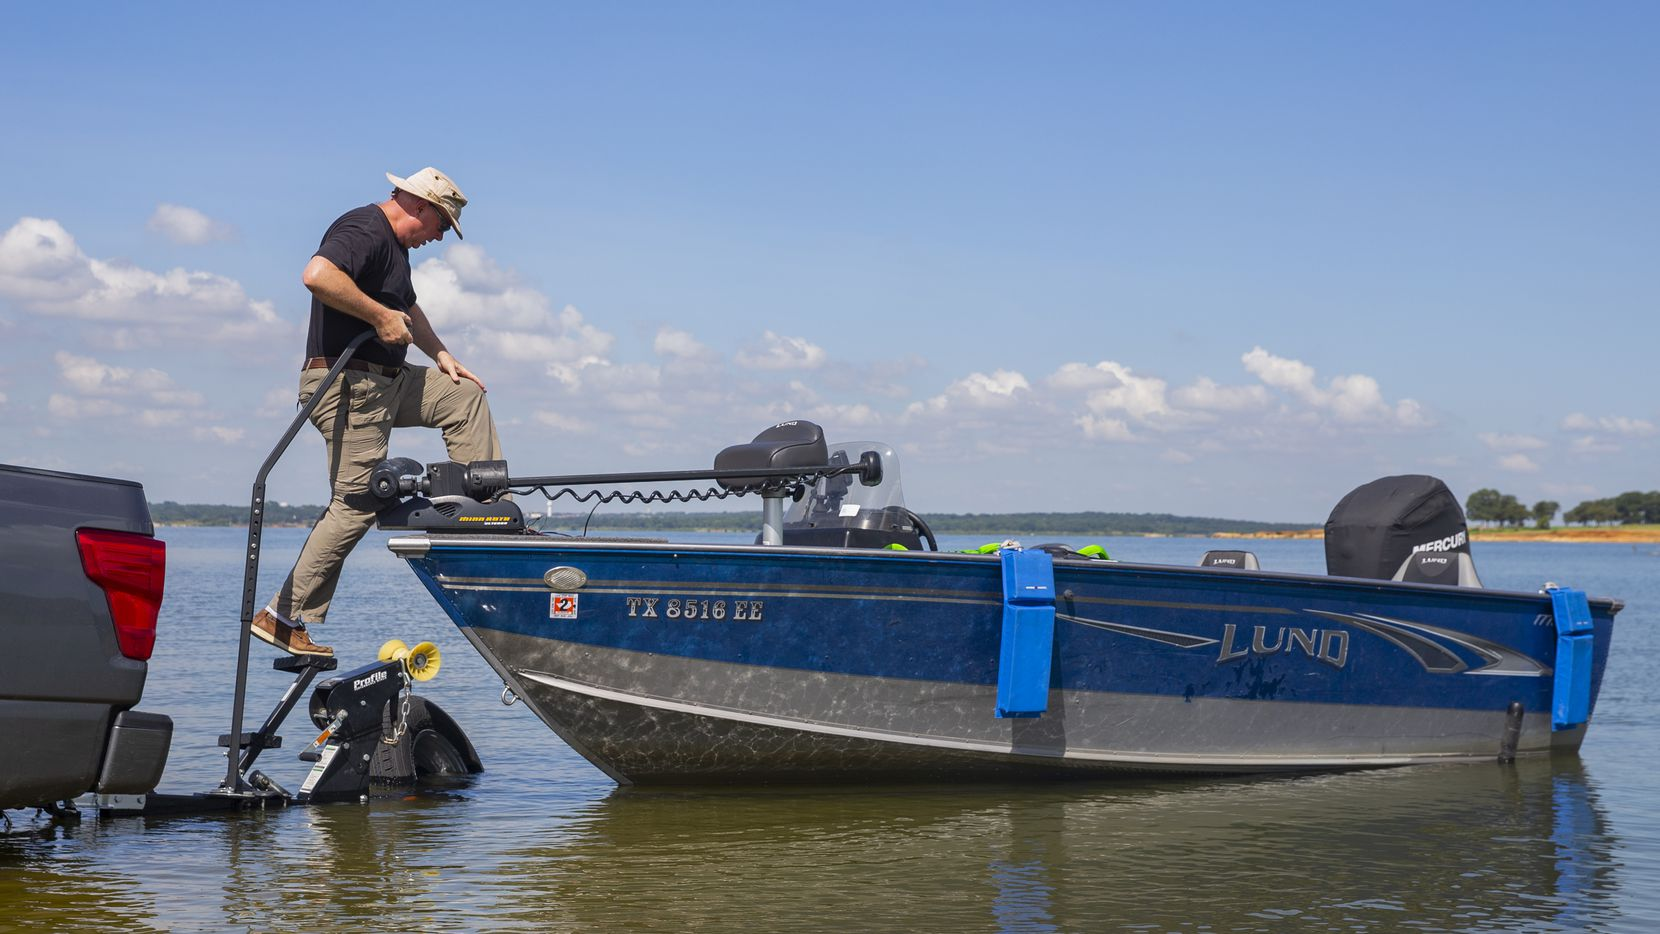 A man unloads his boat onto Grapevine Lake in this file photo. A number of boat ramps at the lake have been temporarily closed due to high water. (Juan Figueroa/ The Dallas Morning News)